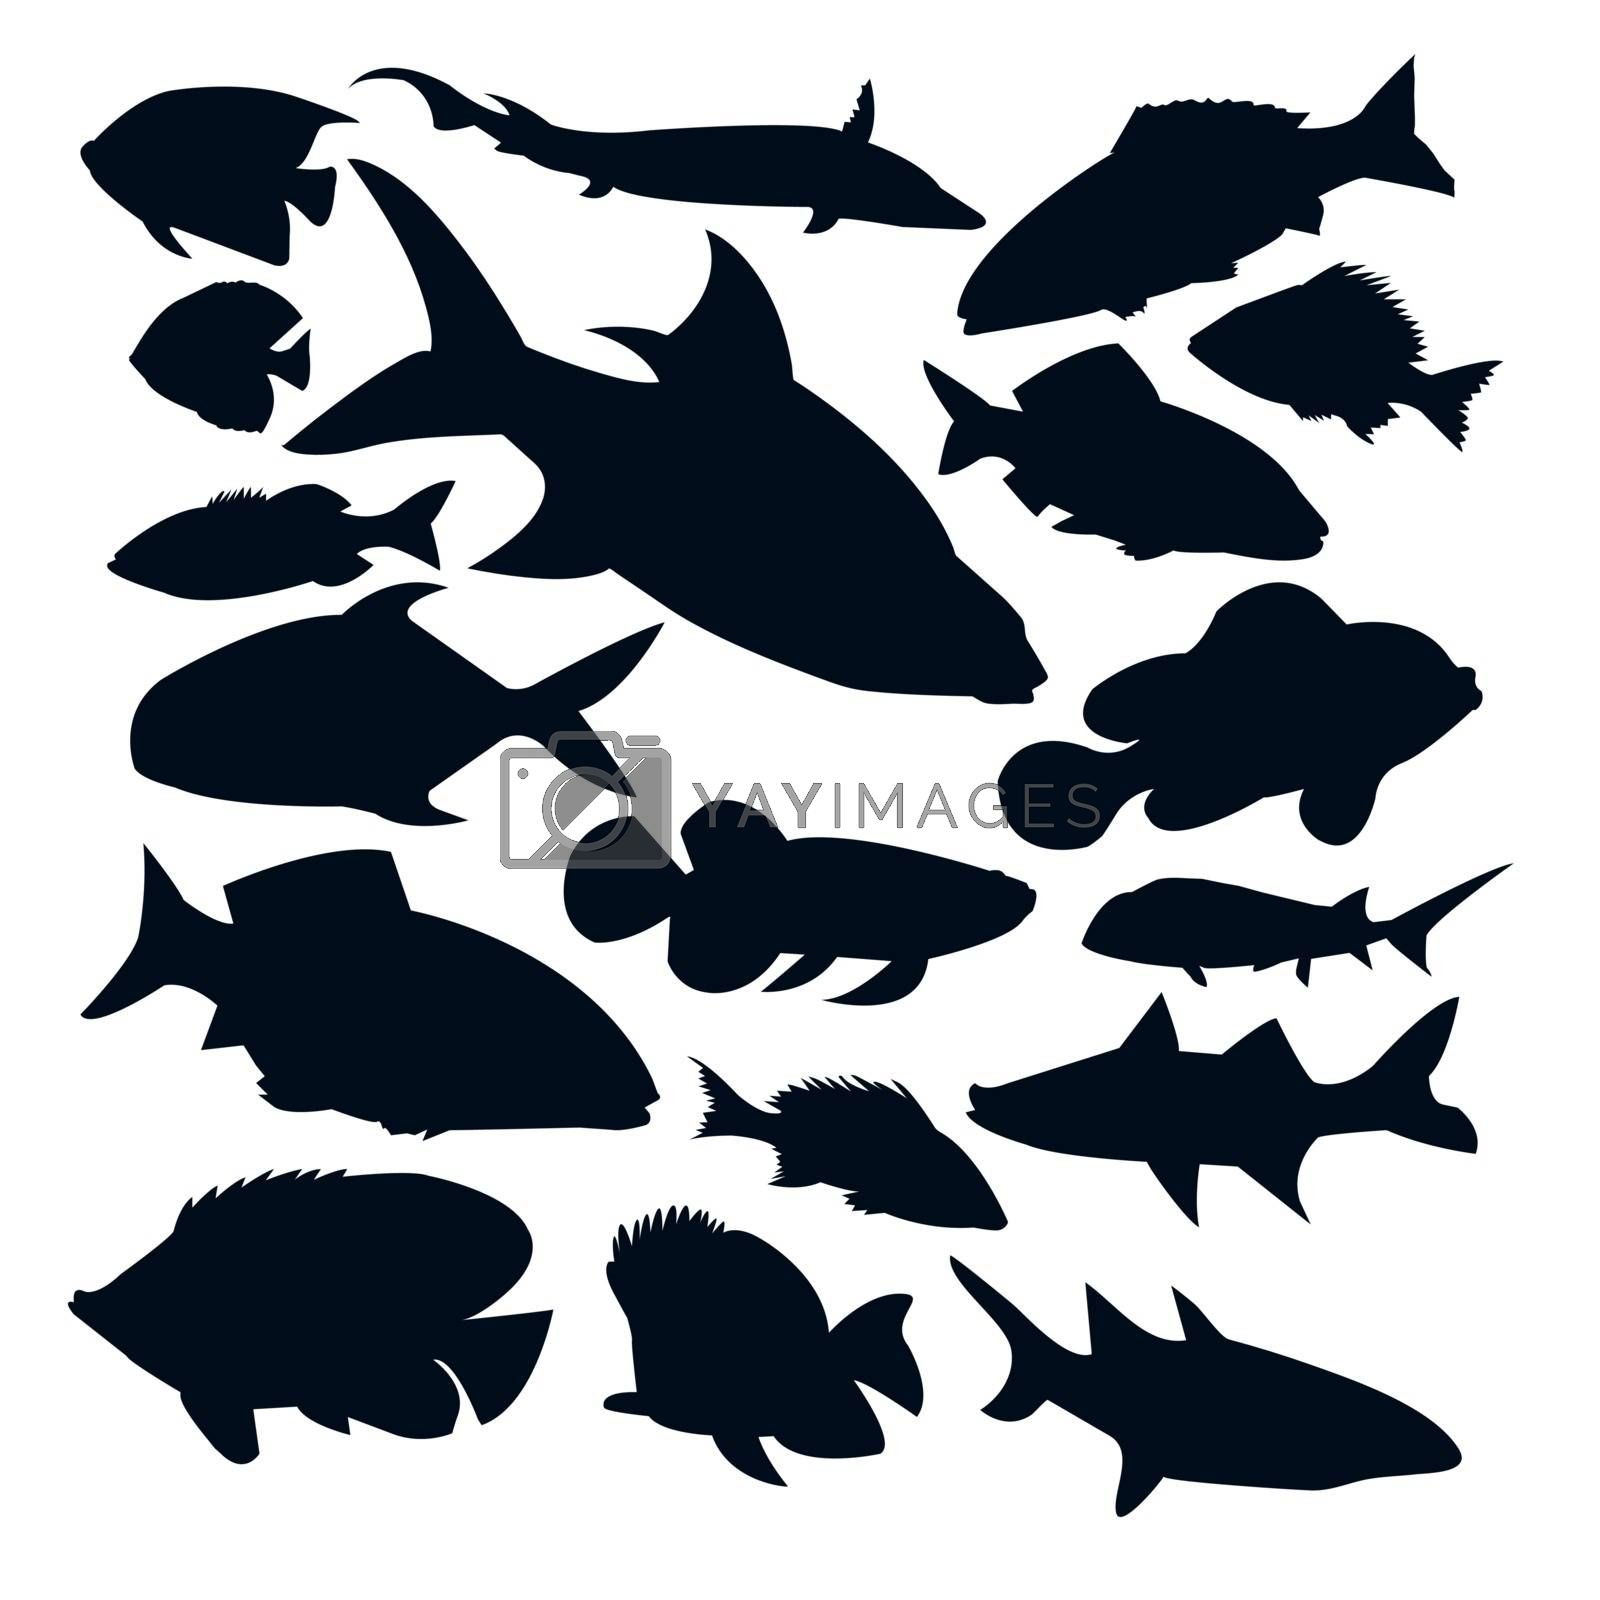 Vector Set of different kinds of fishes silhouettes isolated